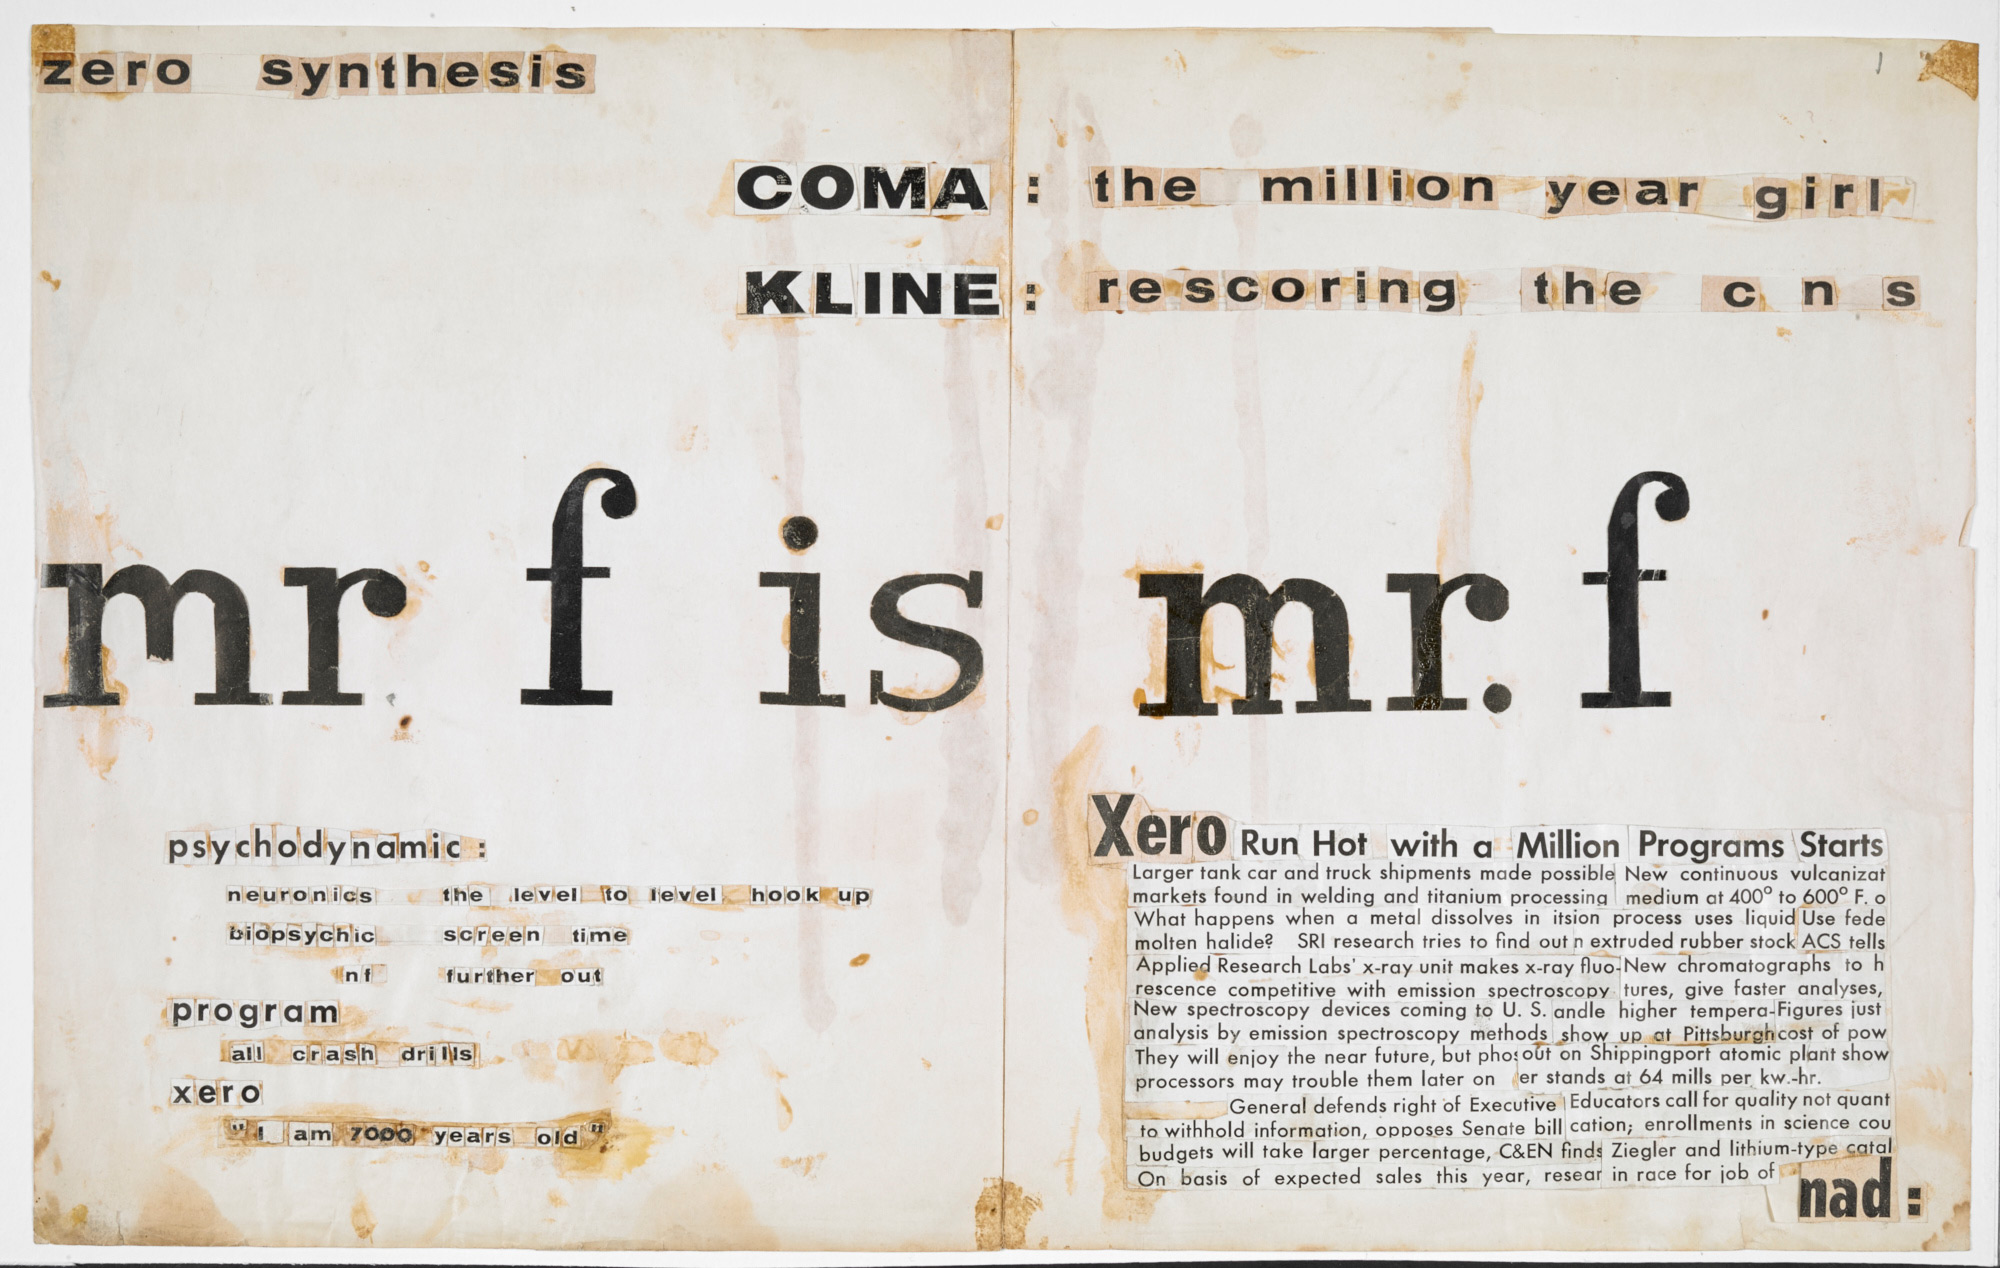 Text collages by J G Ballard, c. 1958